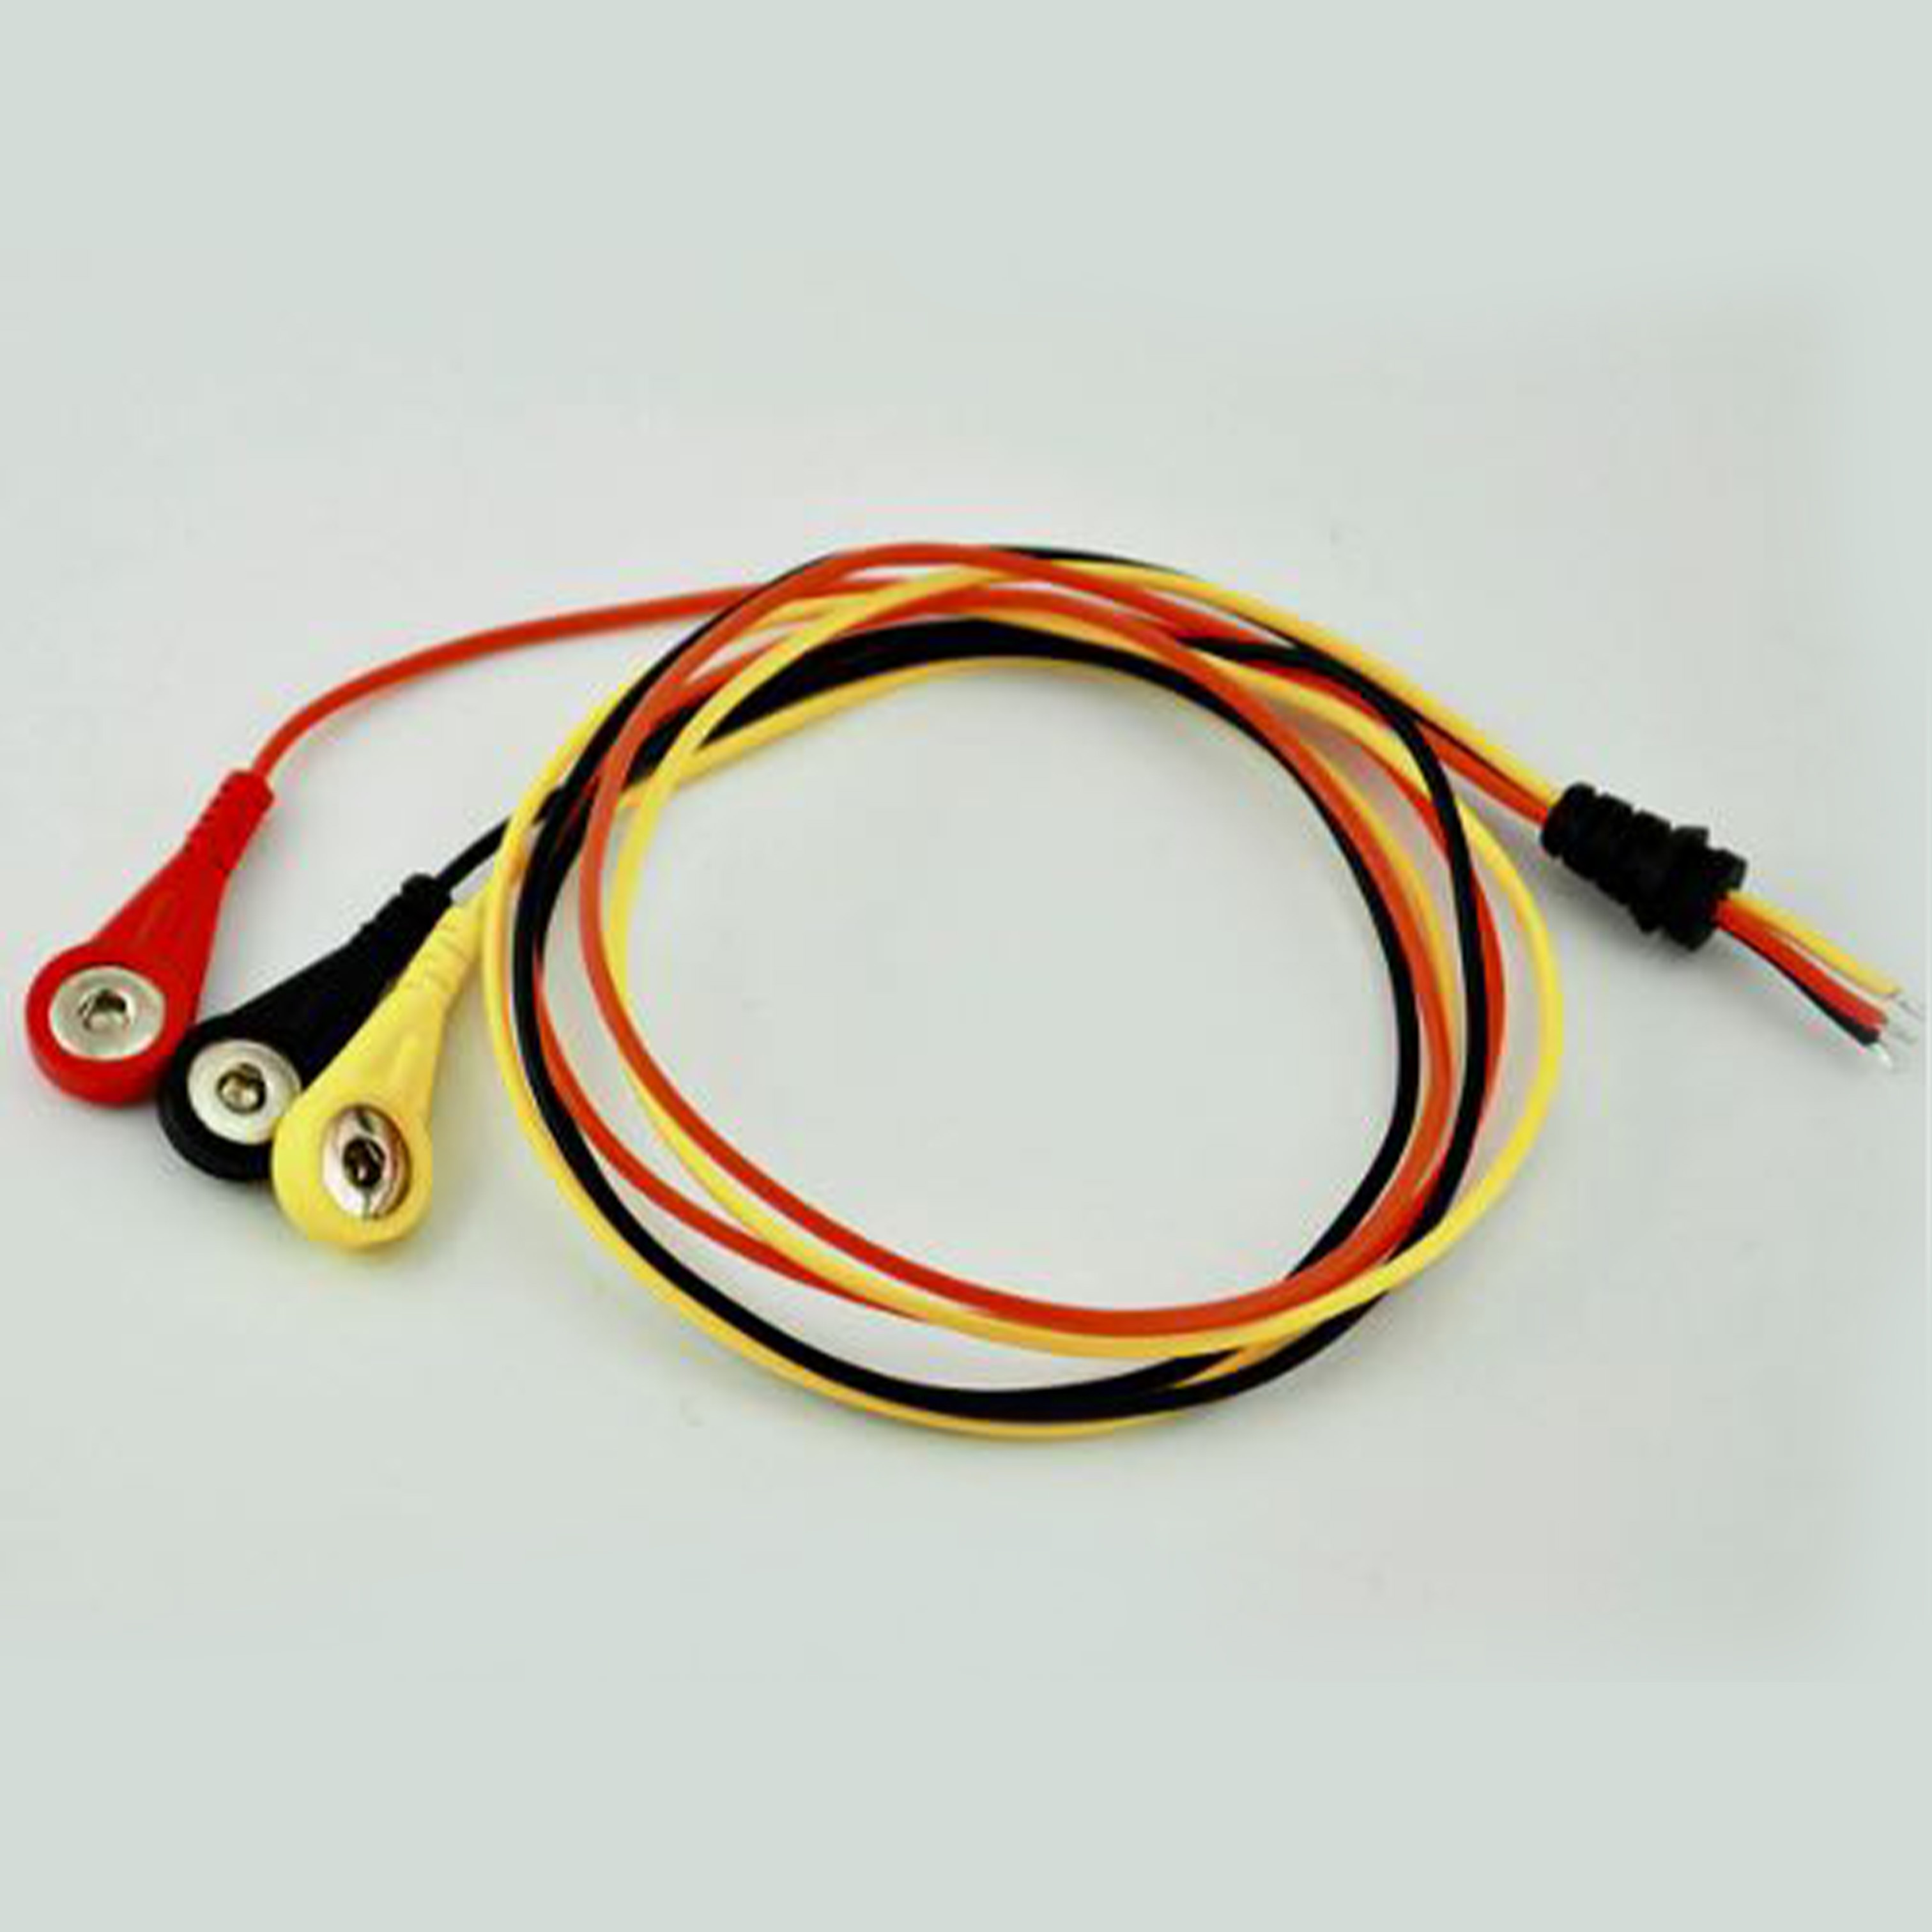 Medical equipment harness -2